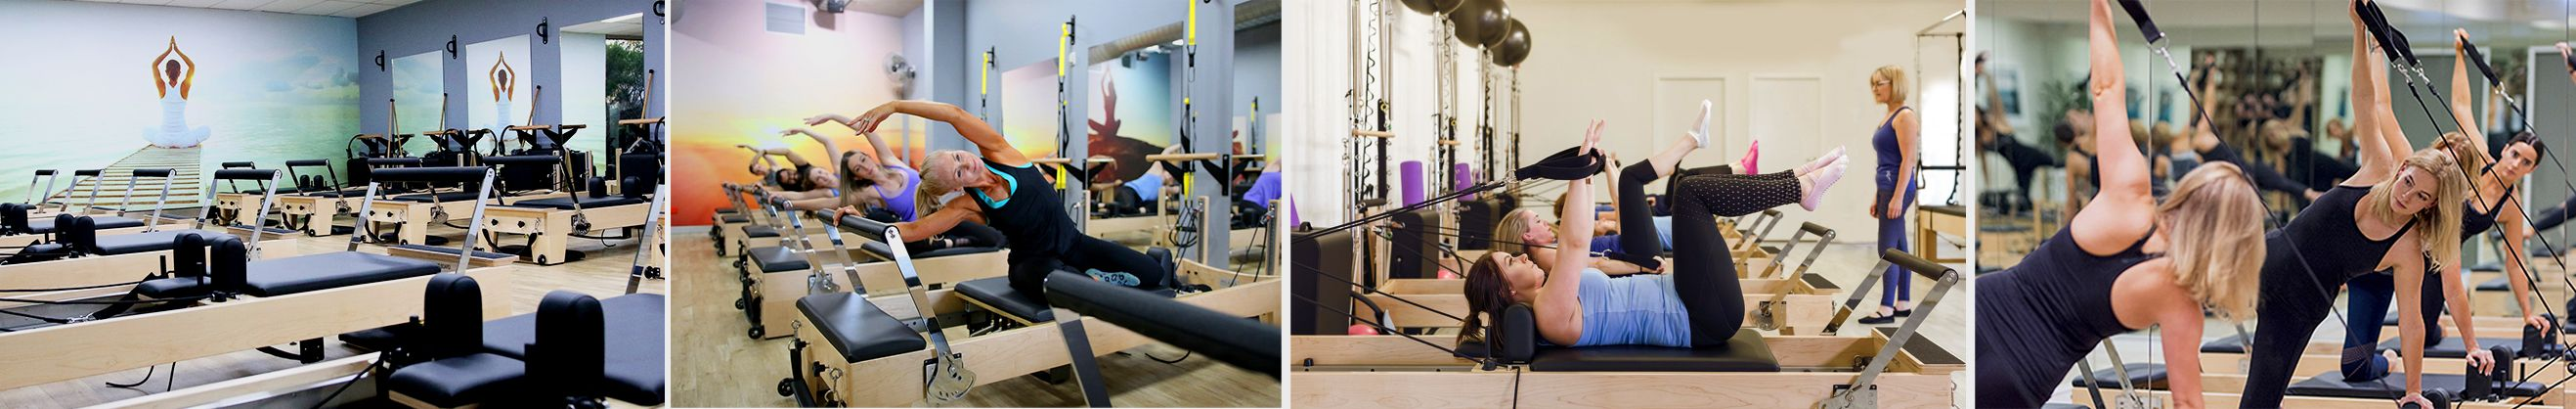 Pilates Health Equipment | Signature Series Pilates Reformer Range